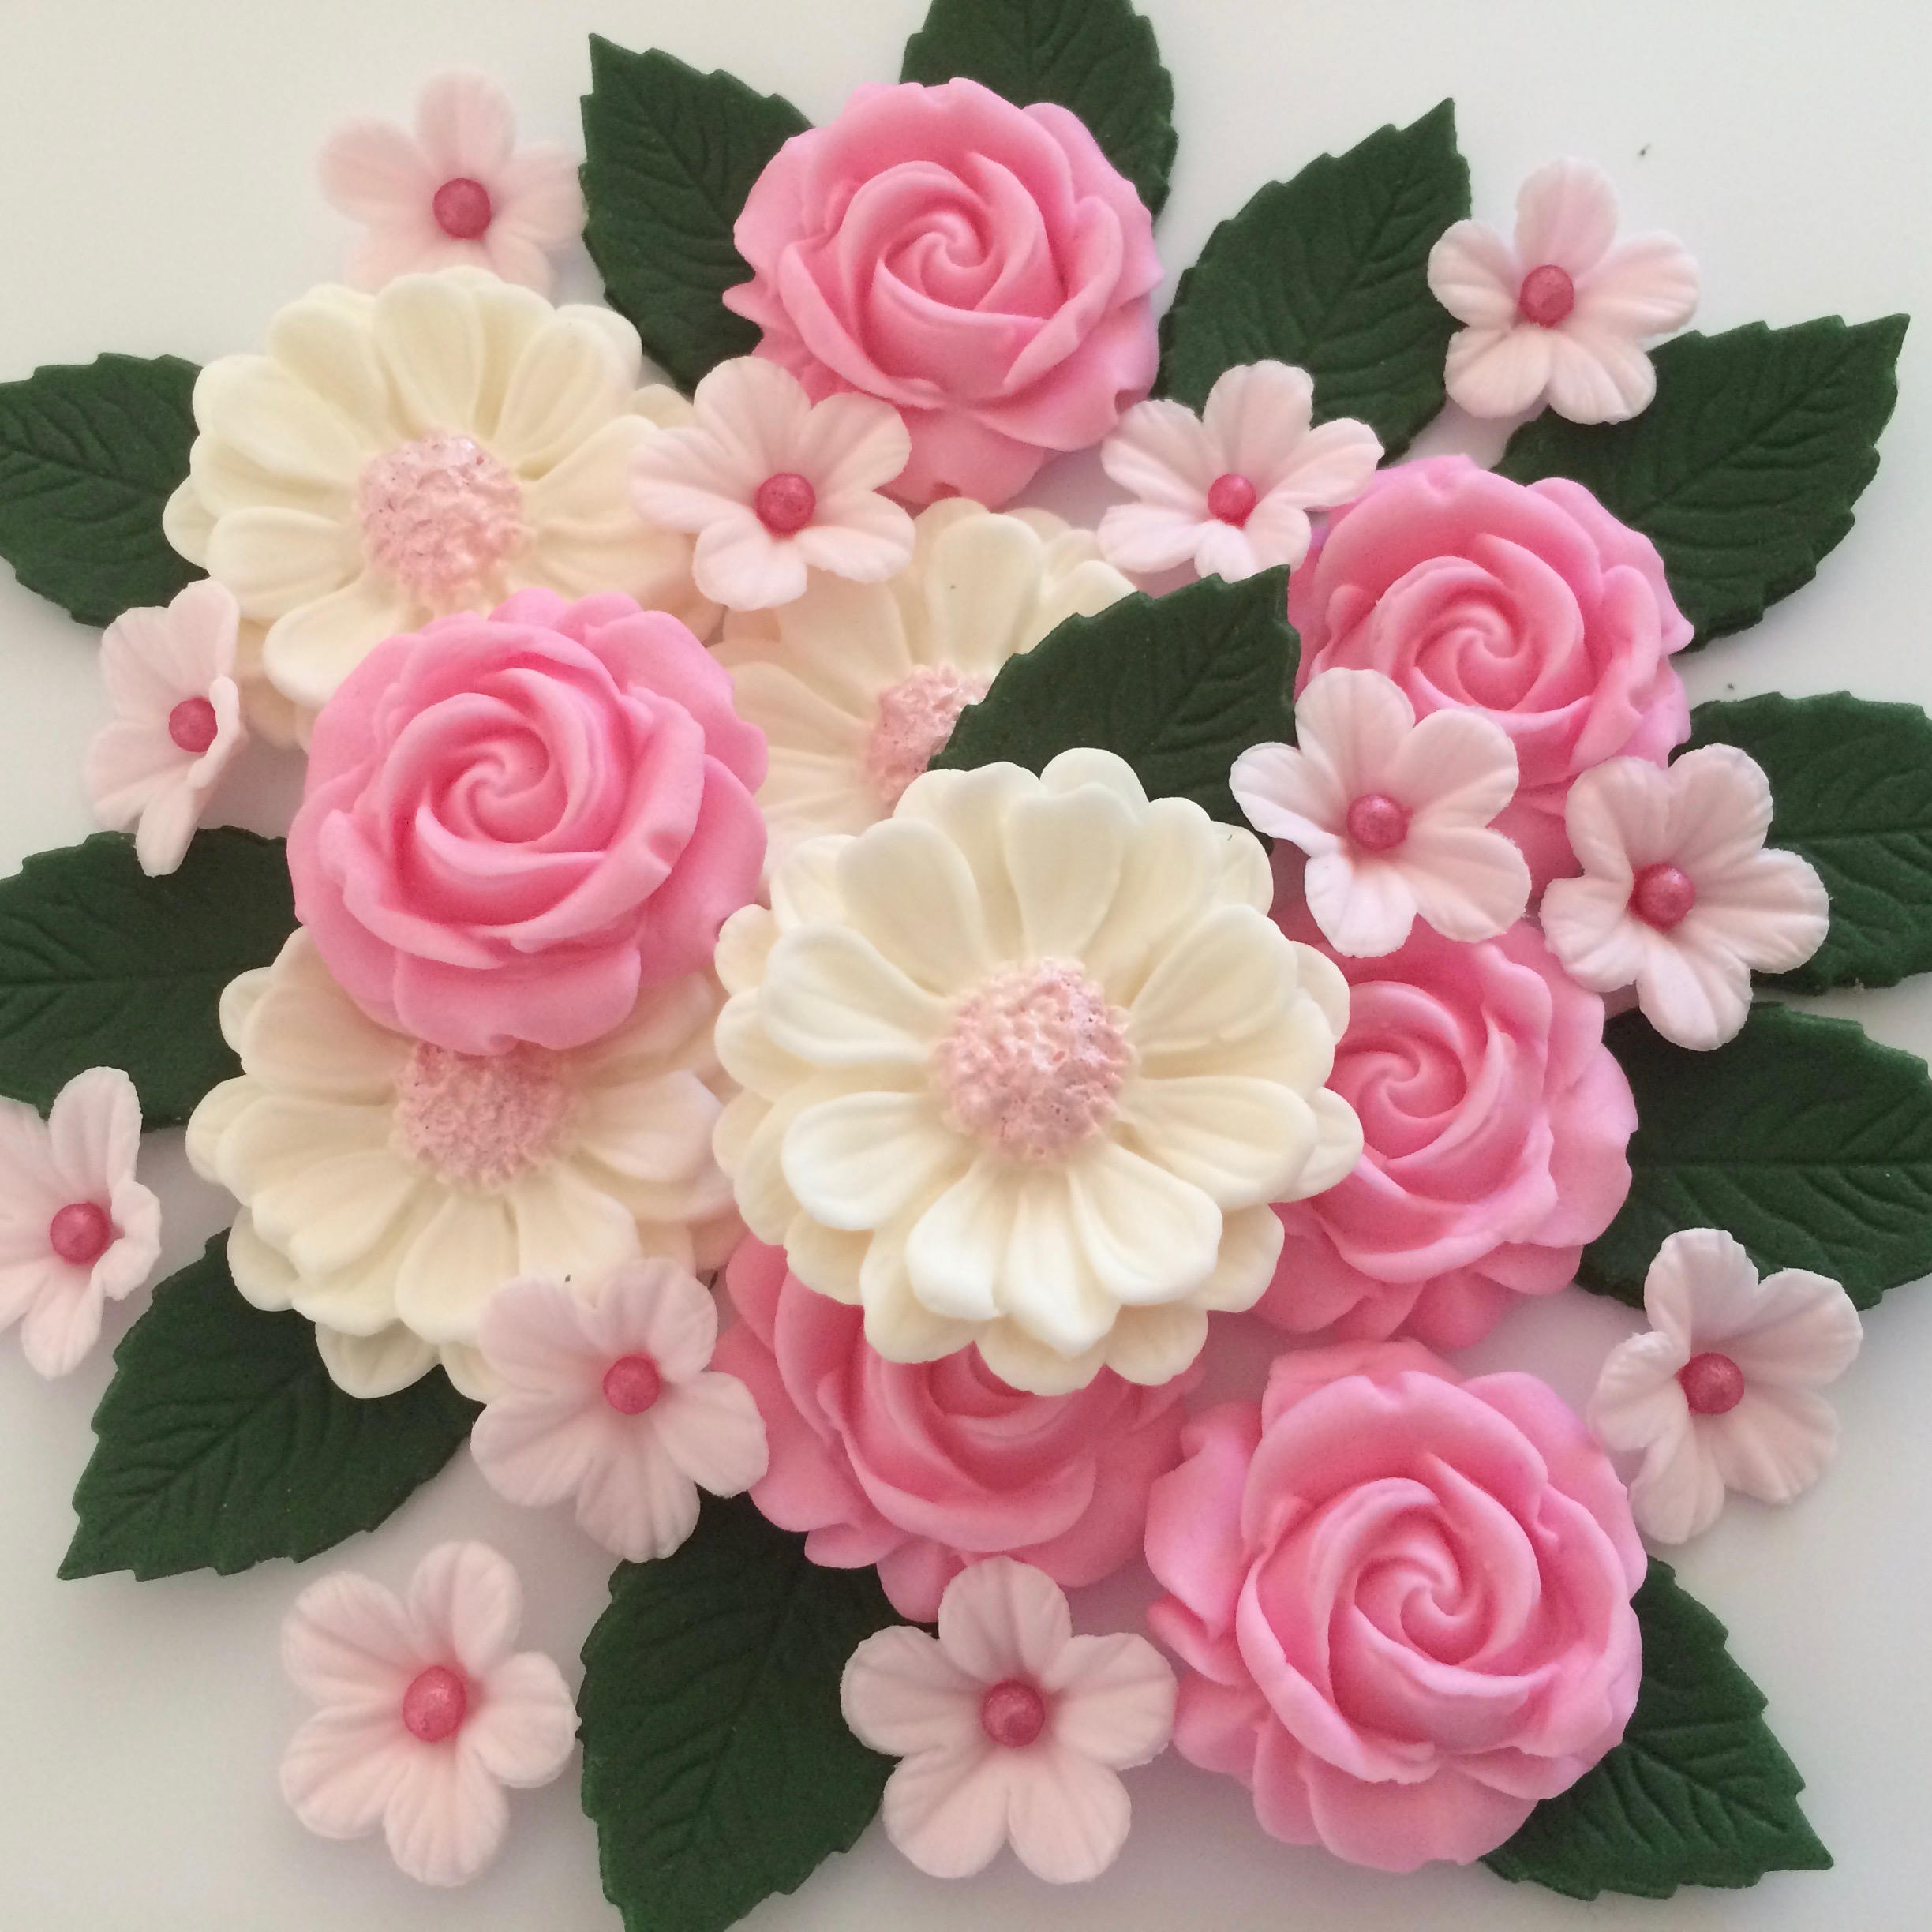 Candy Pink Rose Bouquet Edible Sugar Flowers Cake Decorations Etsy